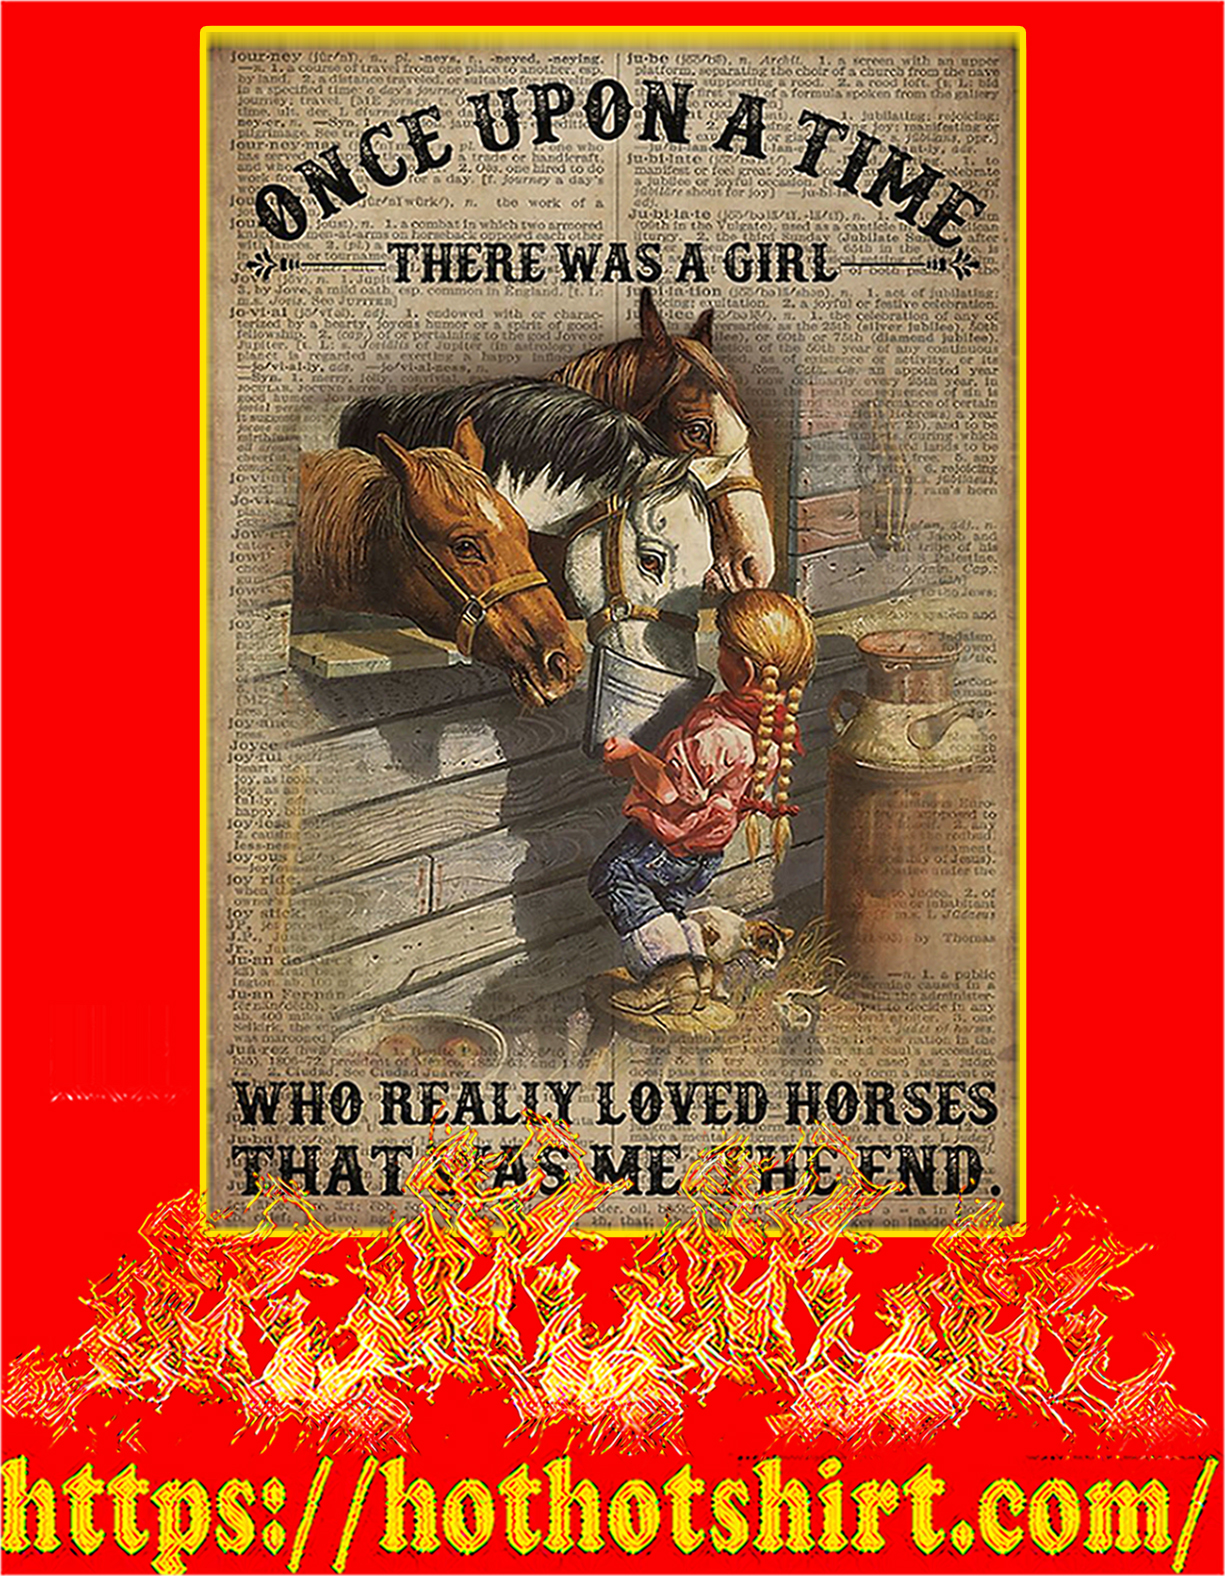 Once upon a time there was a girl who really loved horses poster - A4